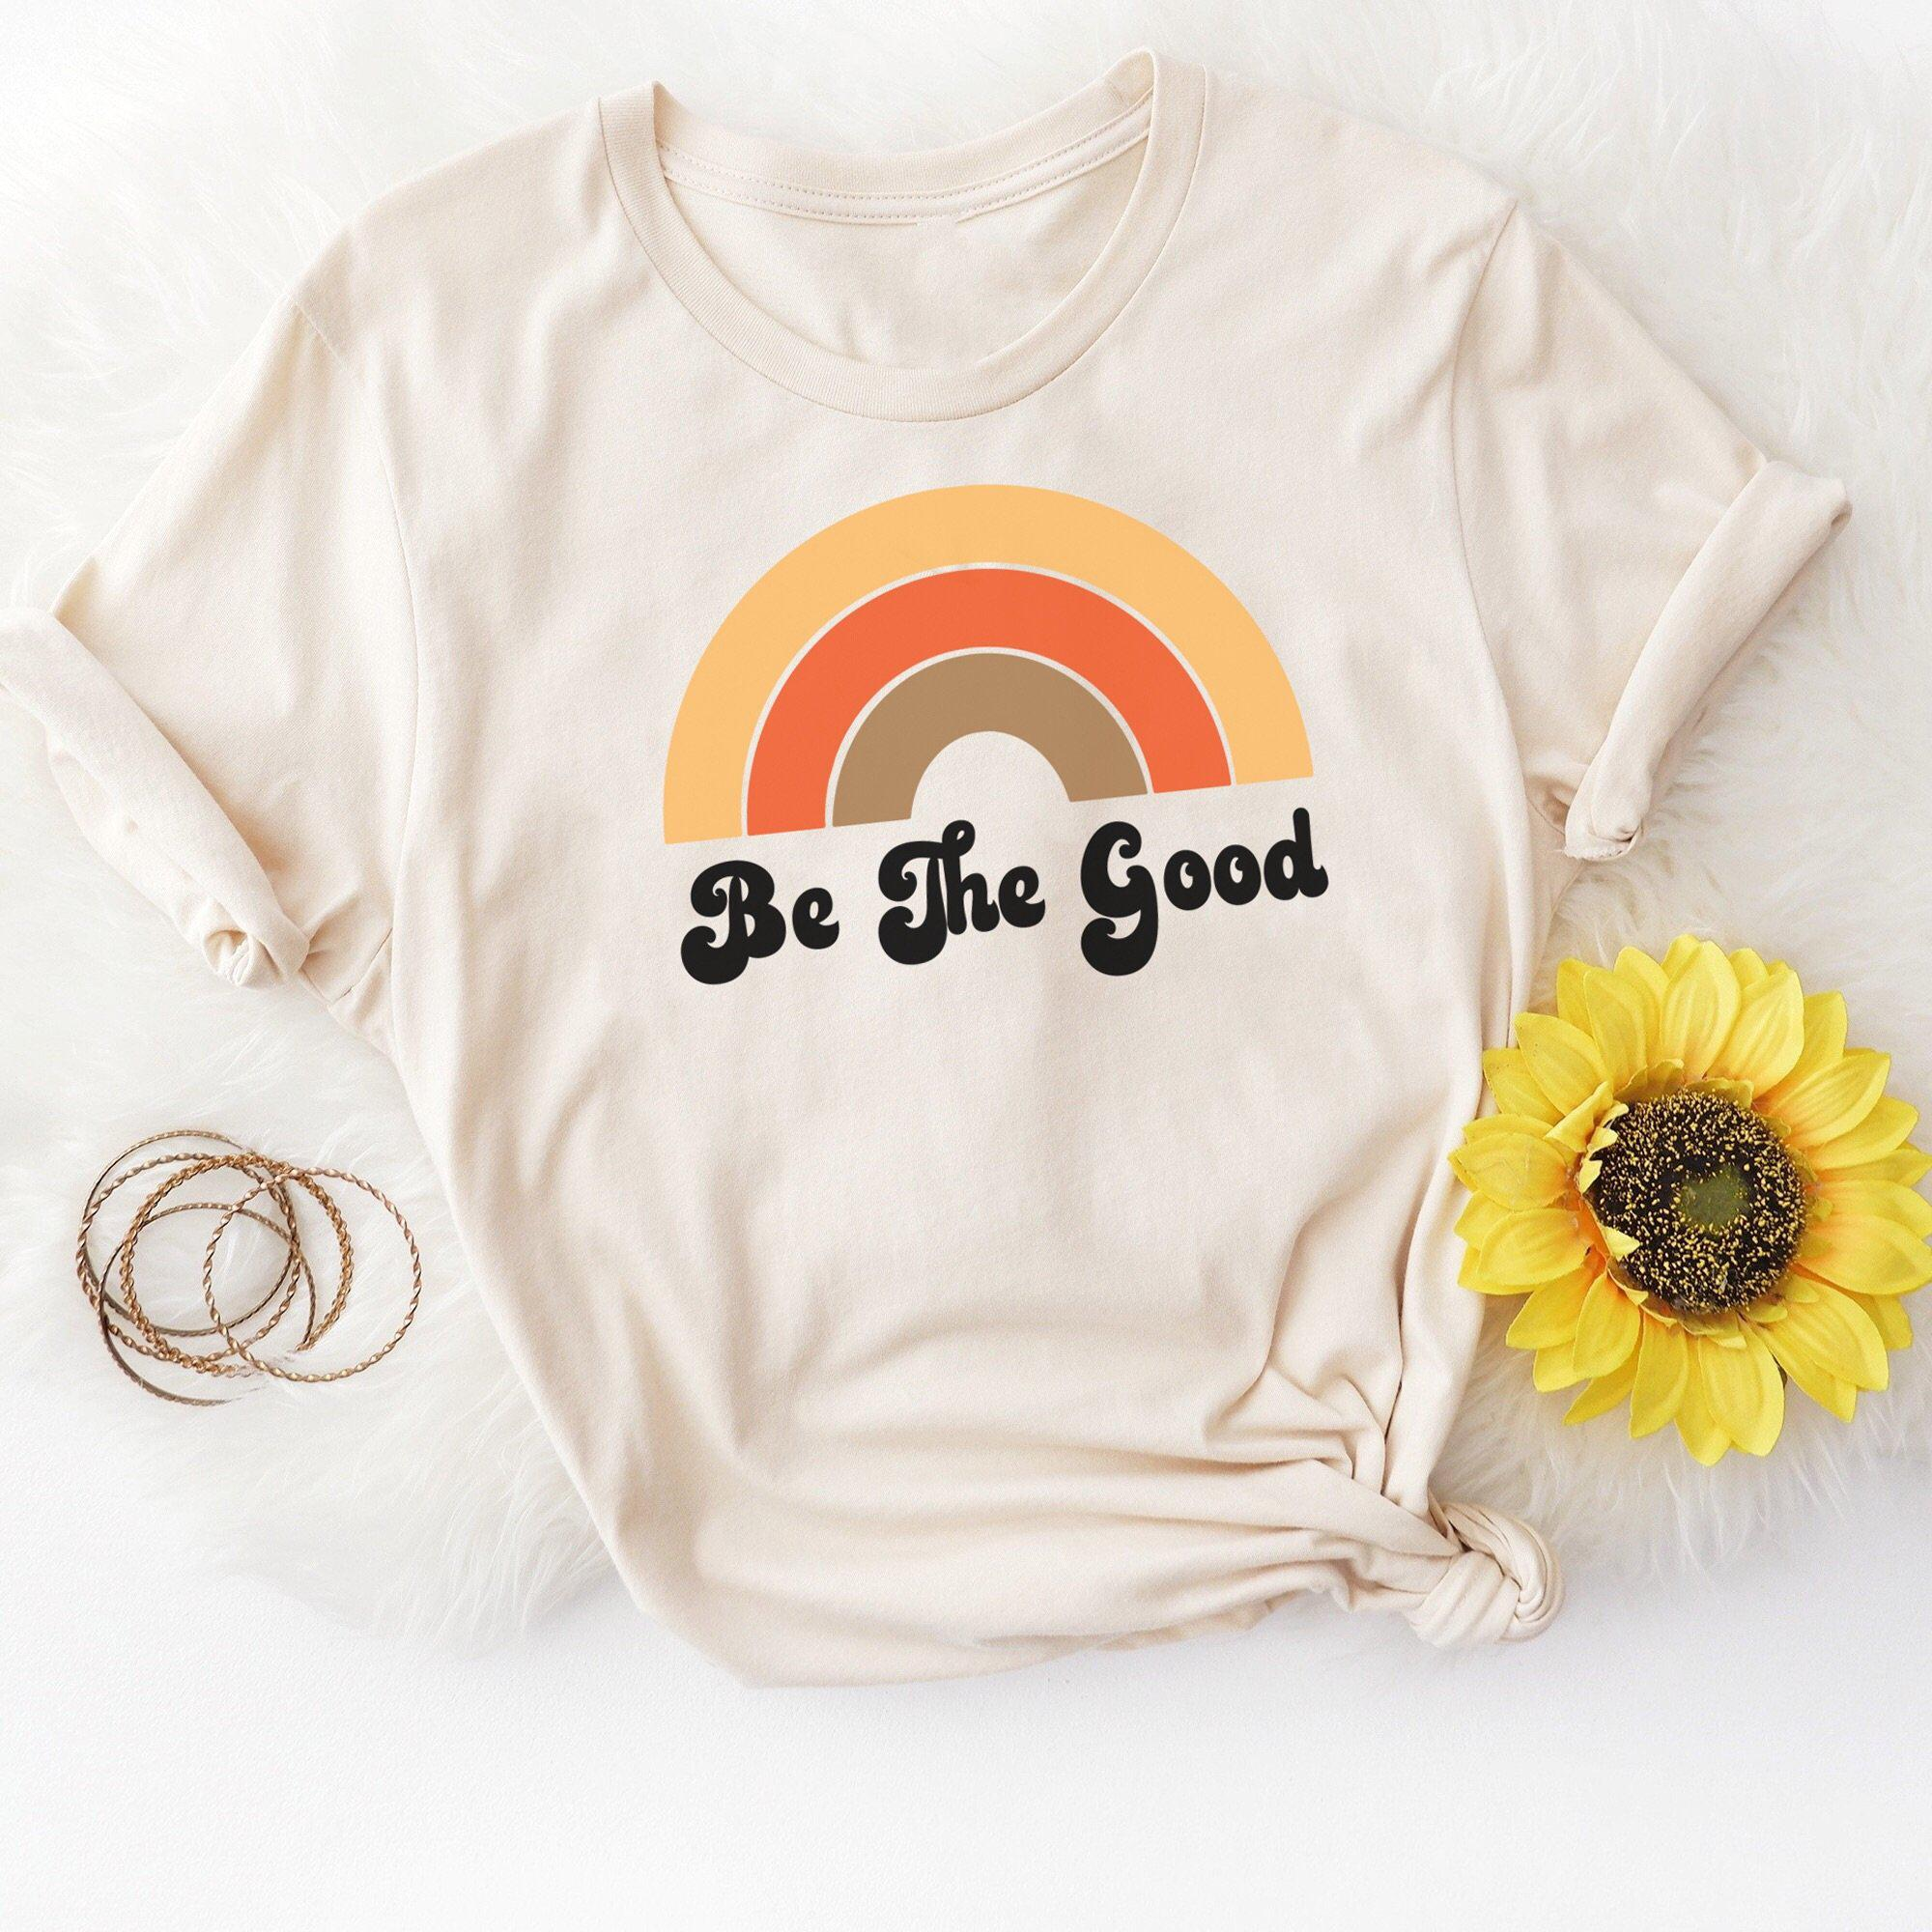 Be The Good Graphic Tee